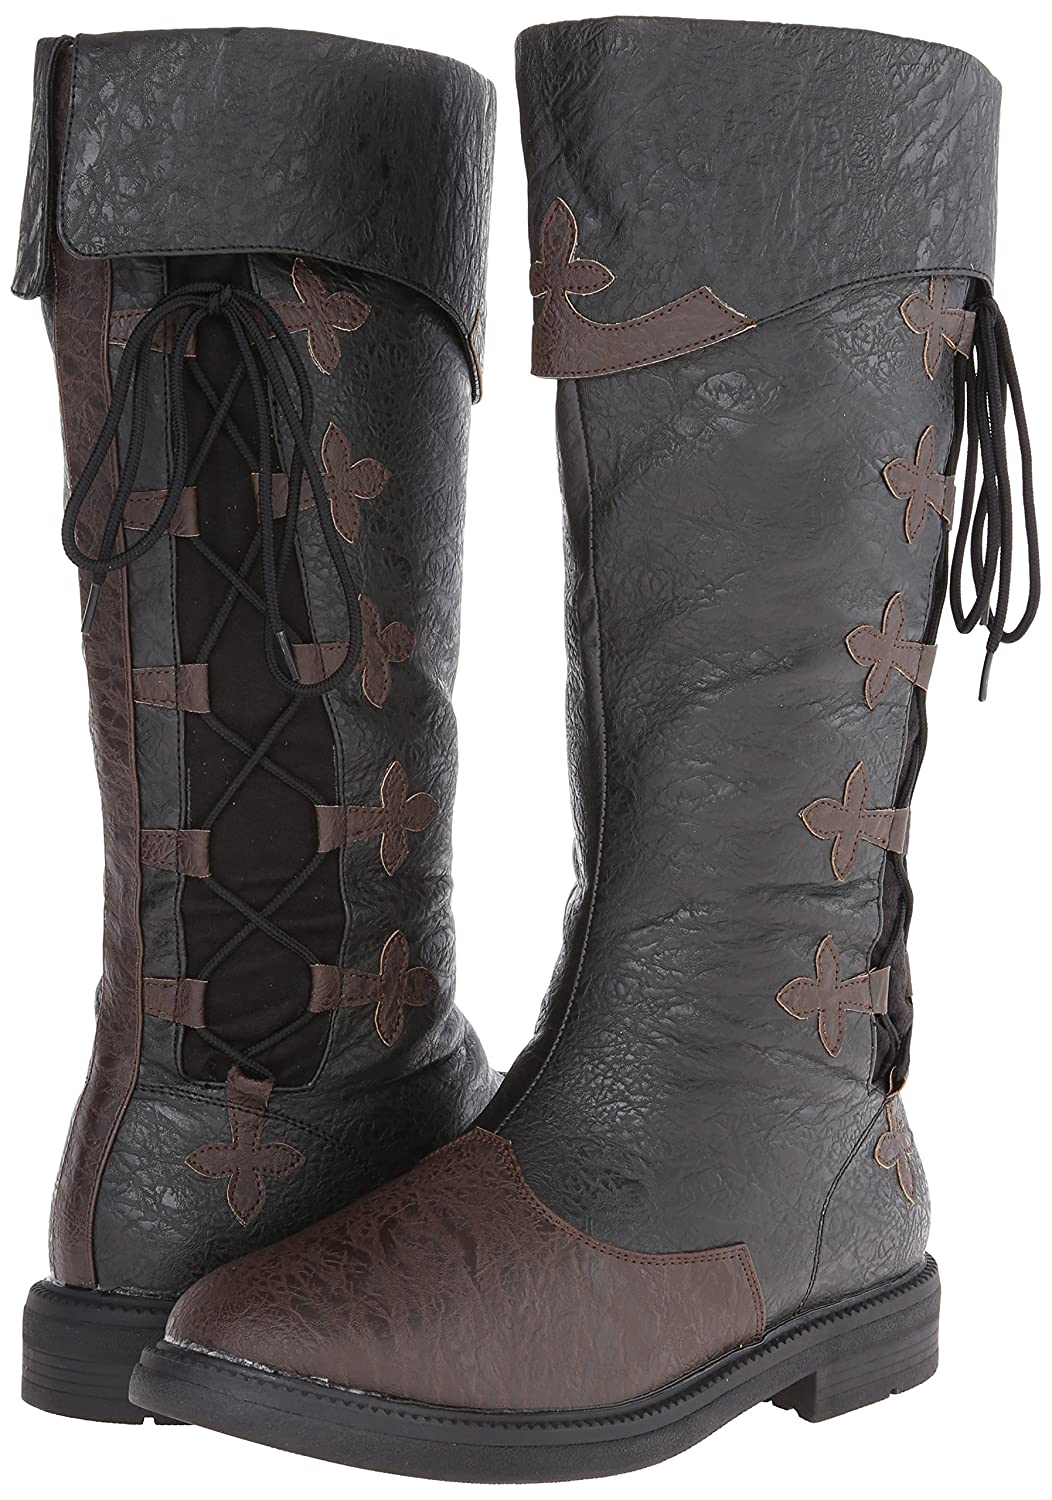 save off online here best sale Medieval and Renaissance Men's Costume Boots & Shoes ...